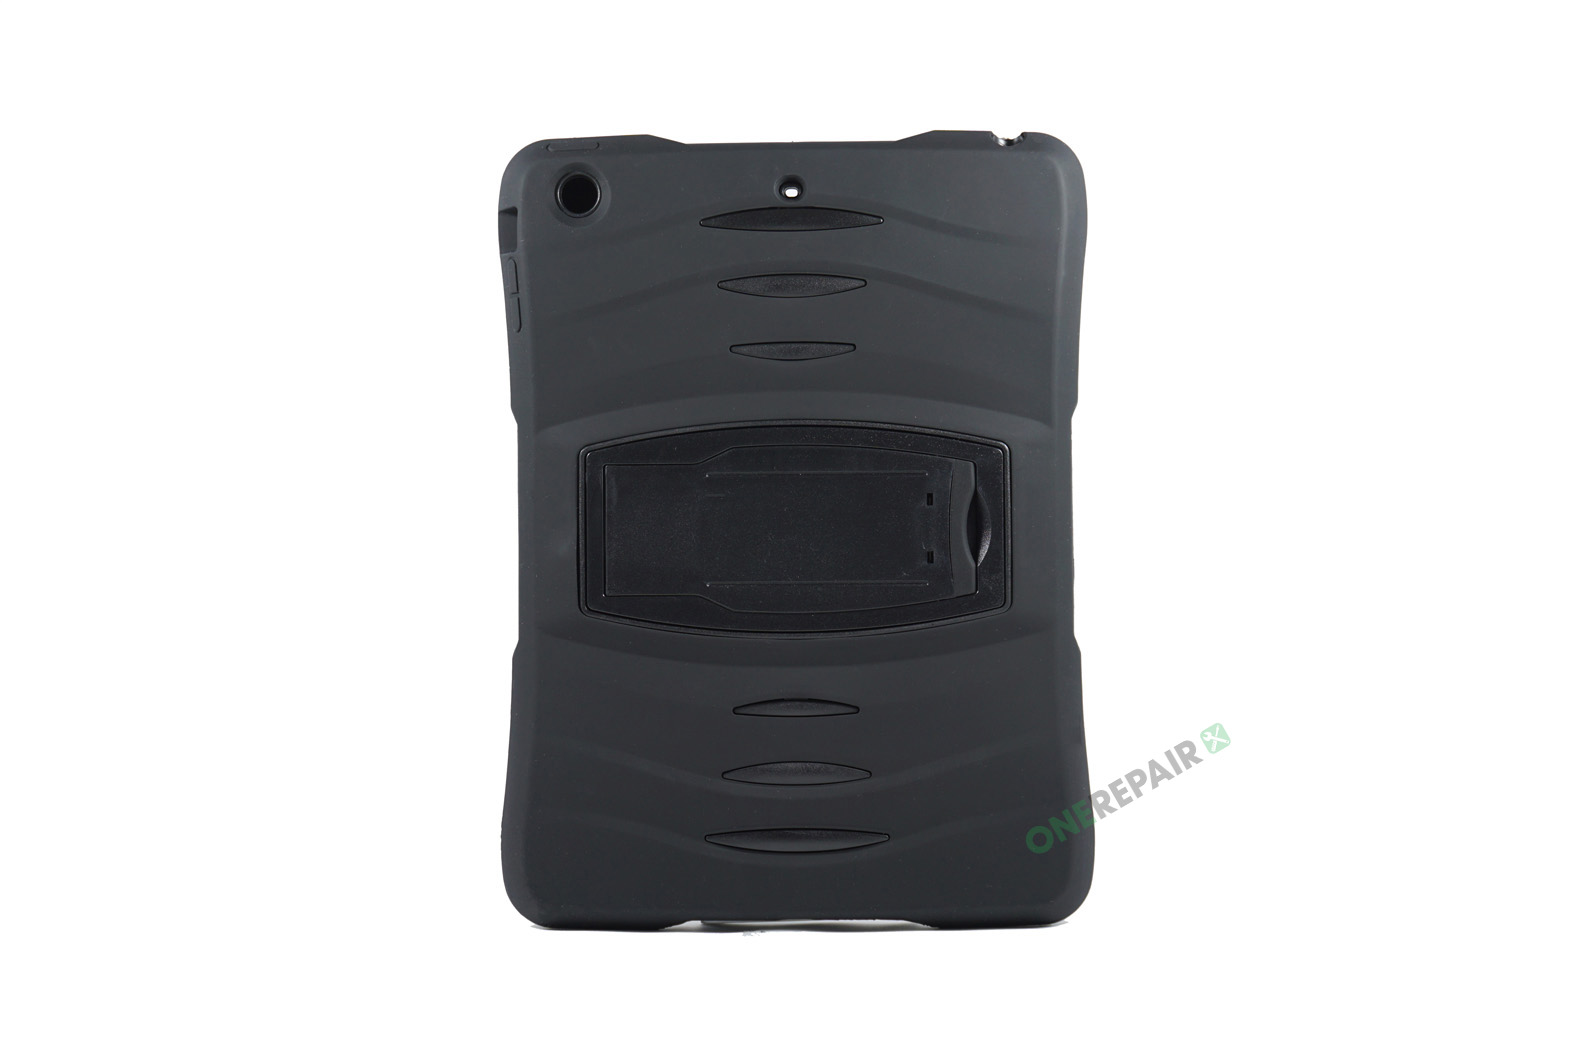 351580_iPad_Air_A1474_A1475_A1476_3-in-1_Speciel_Boernecover_Børne_Hardcase_Cover_Sort_OneRepair_00001